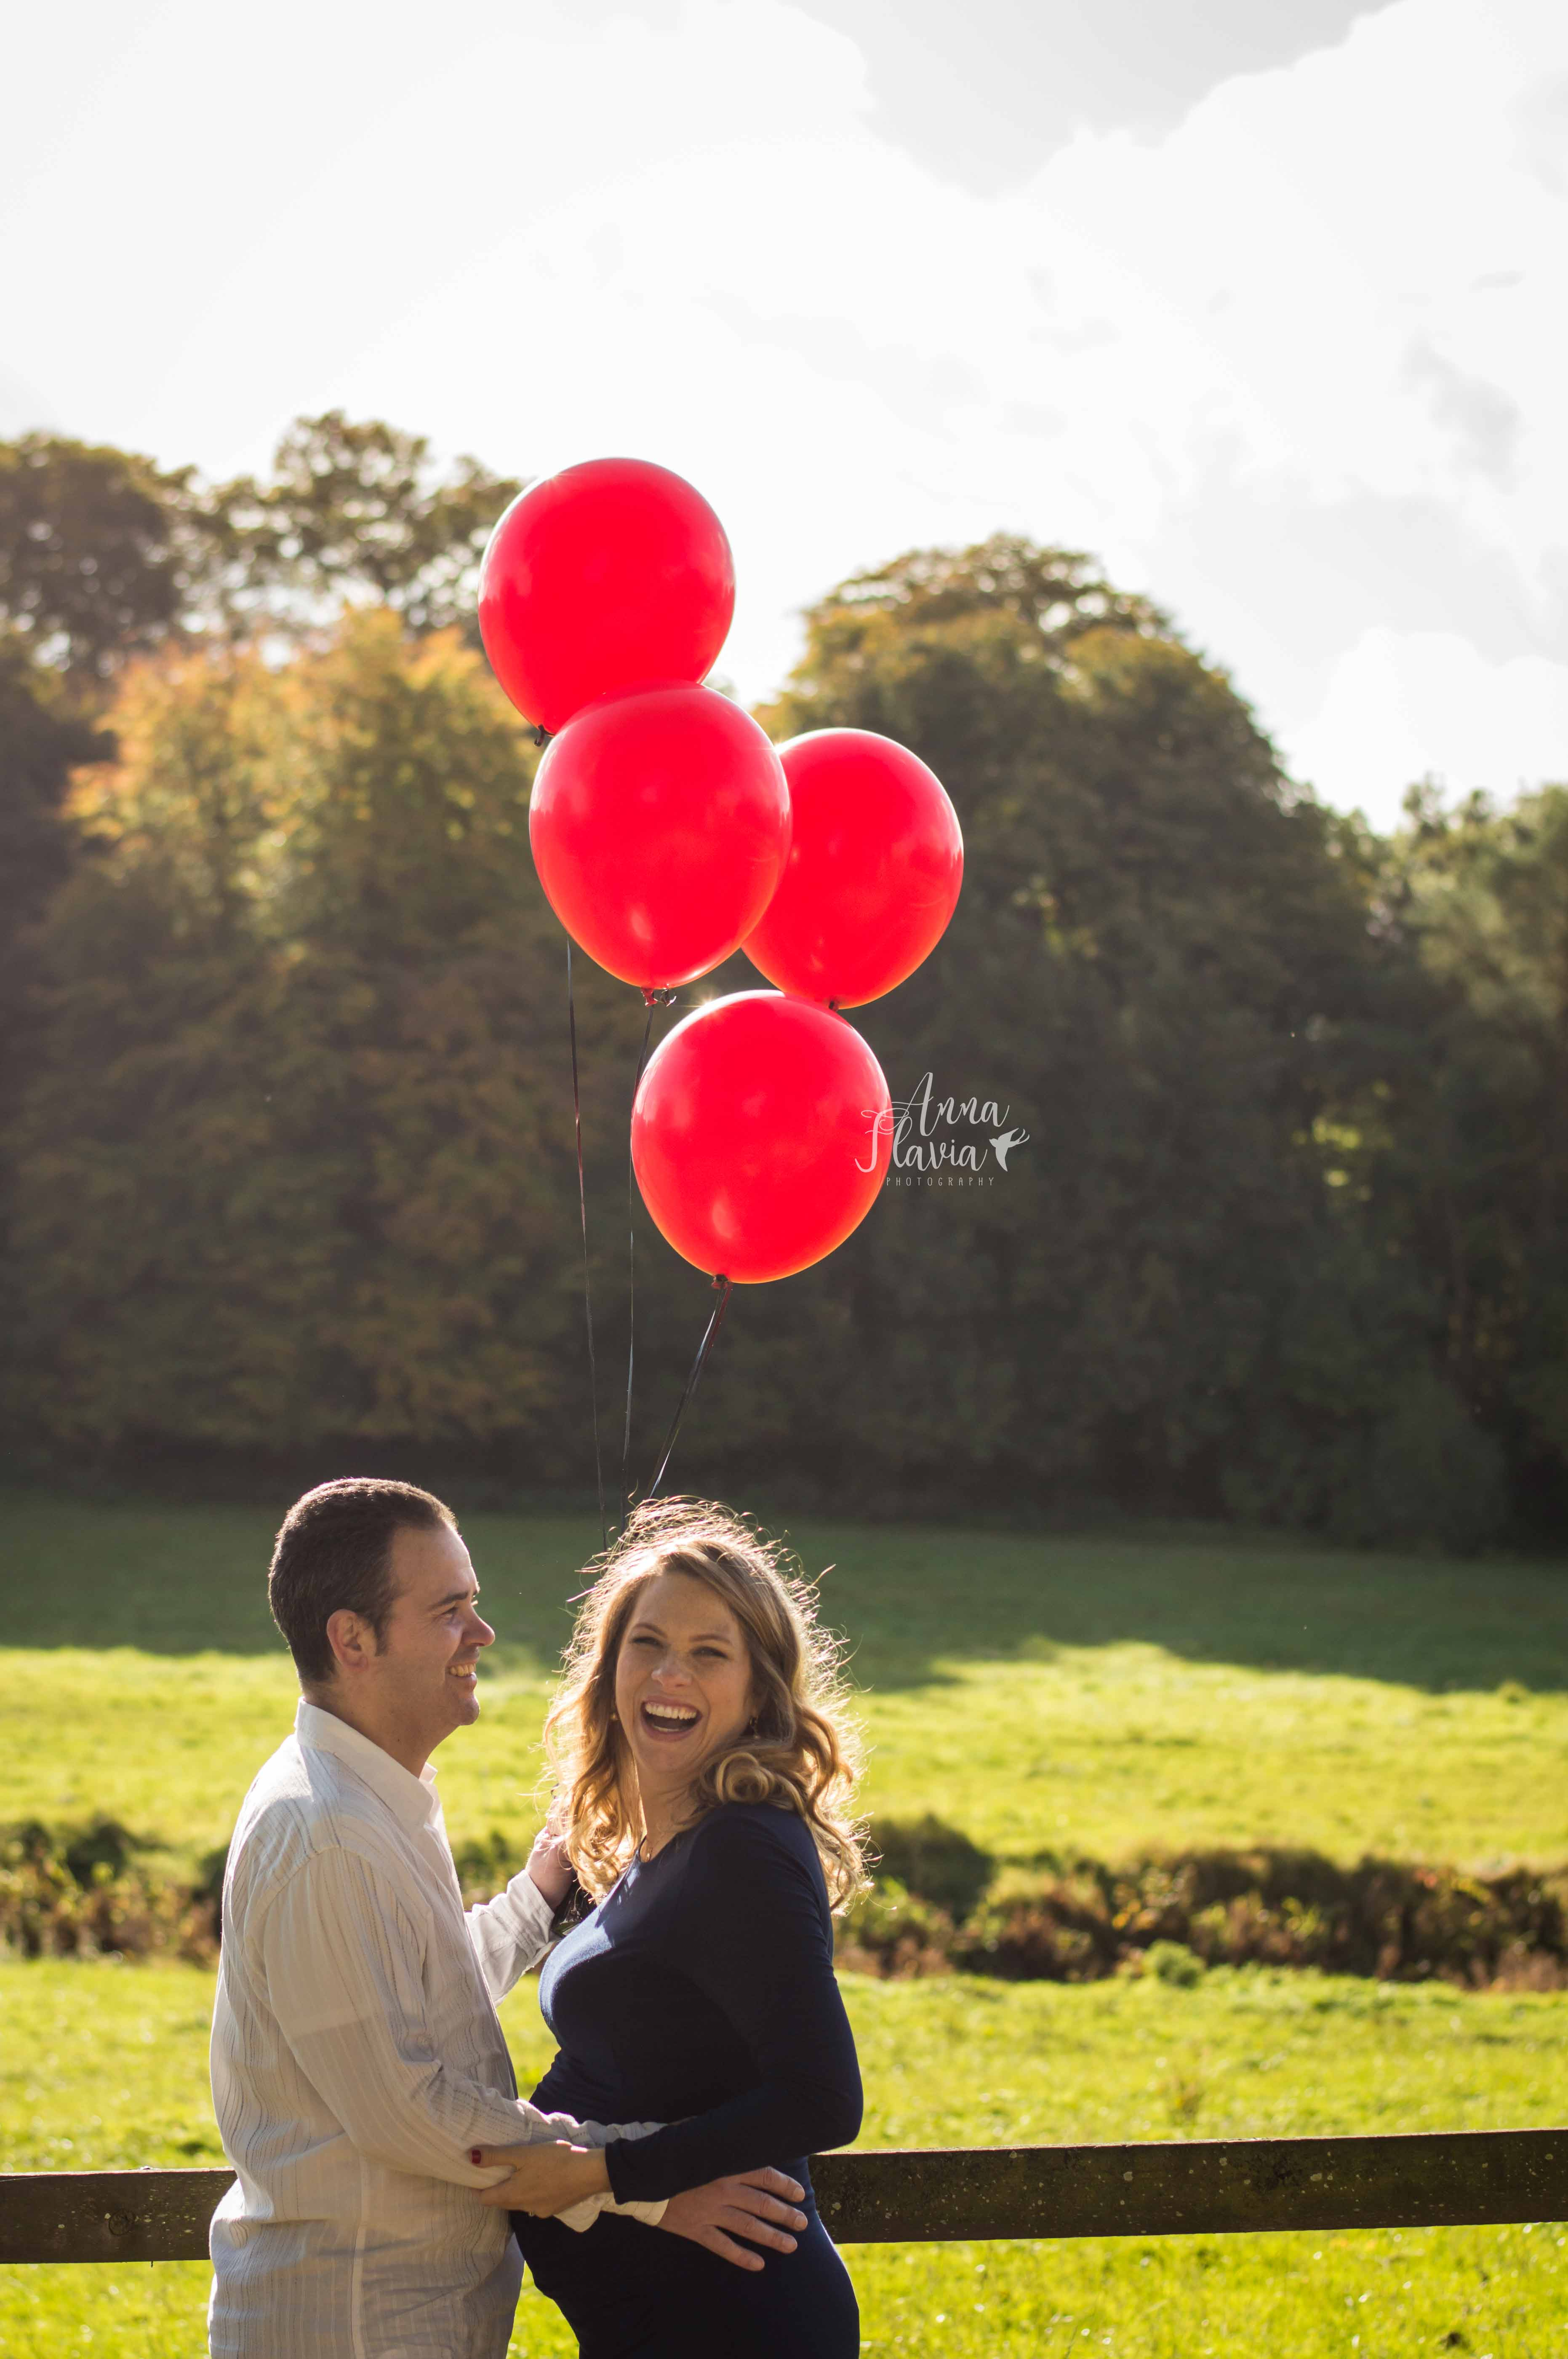 photographer_dublin_anna_flavia_maternity_newborn_family_17